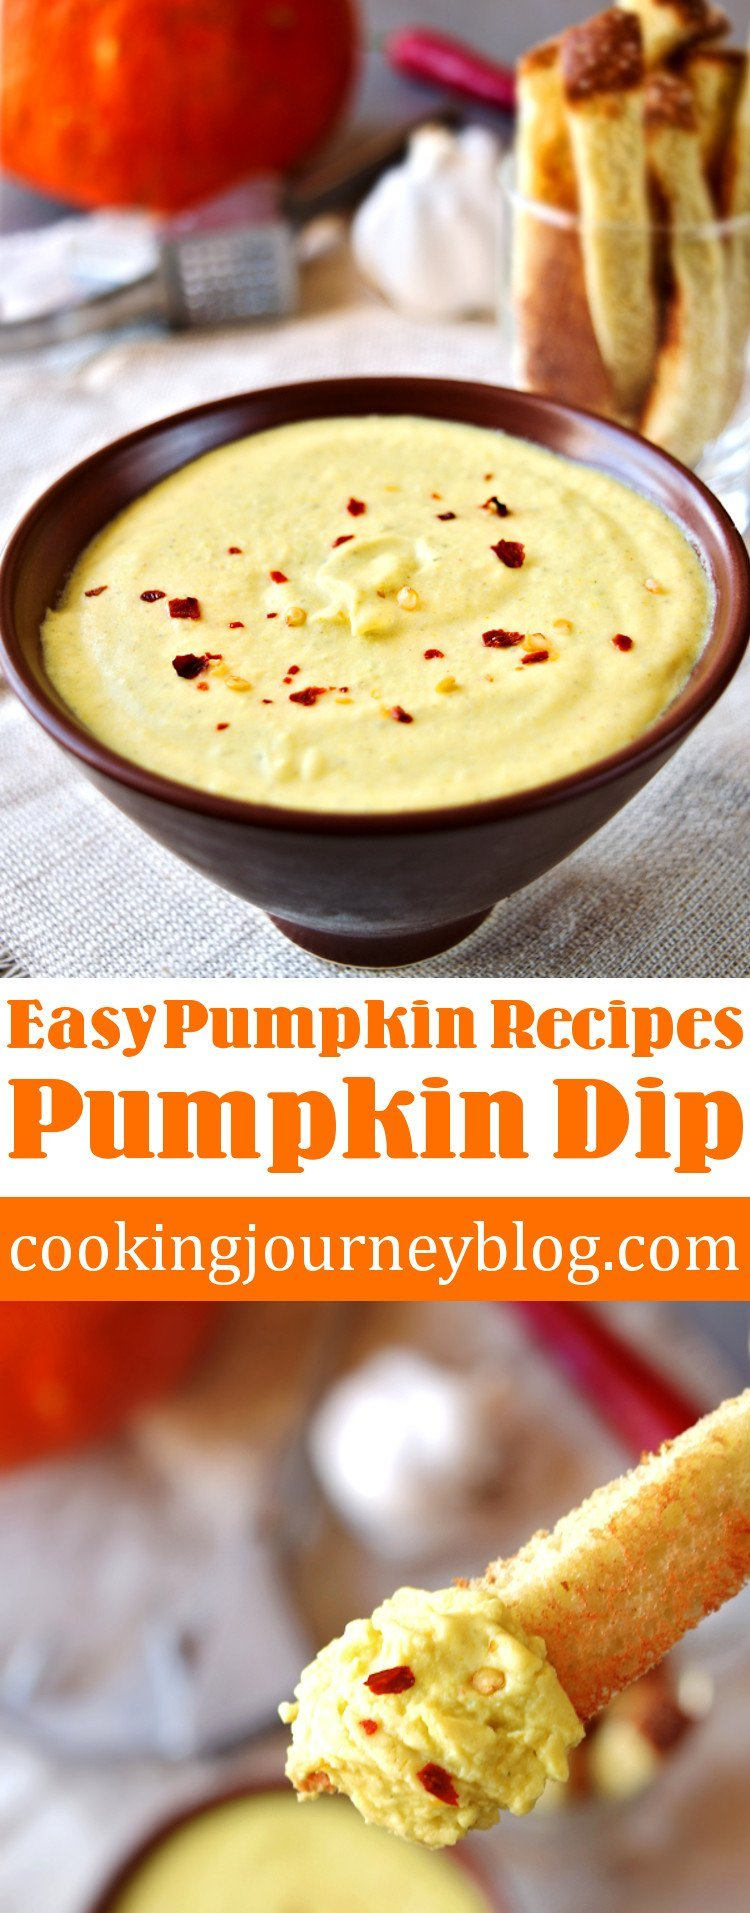 Pumpkin dip recipe – Easy pumpkin recipes pin